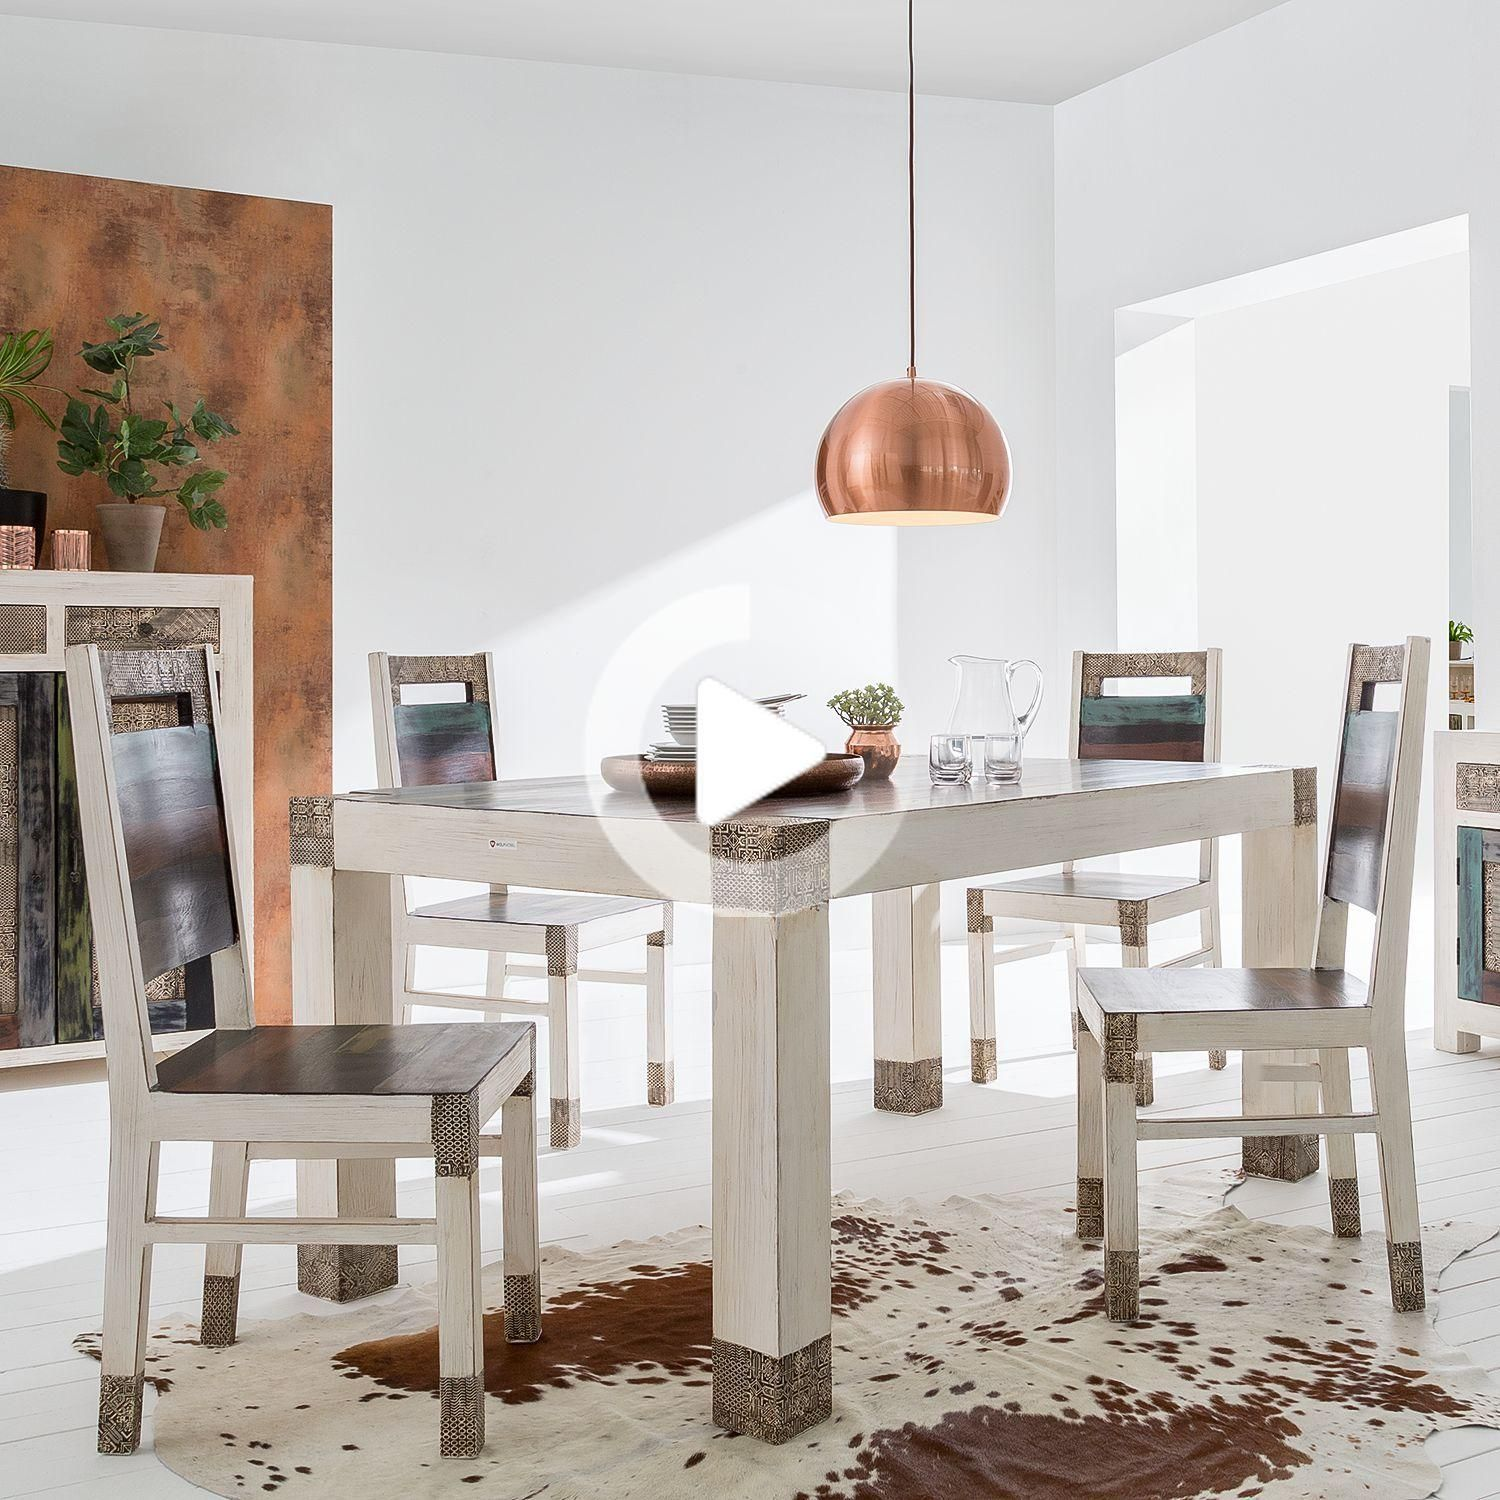 Dining Table Goa White 5 Parts In 2020 Farmhouse Dining Chairs Dining Table Mediterranean Home Decor